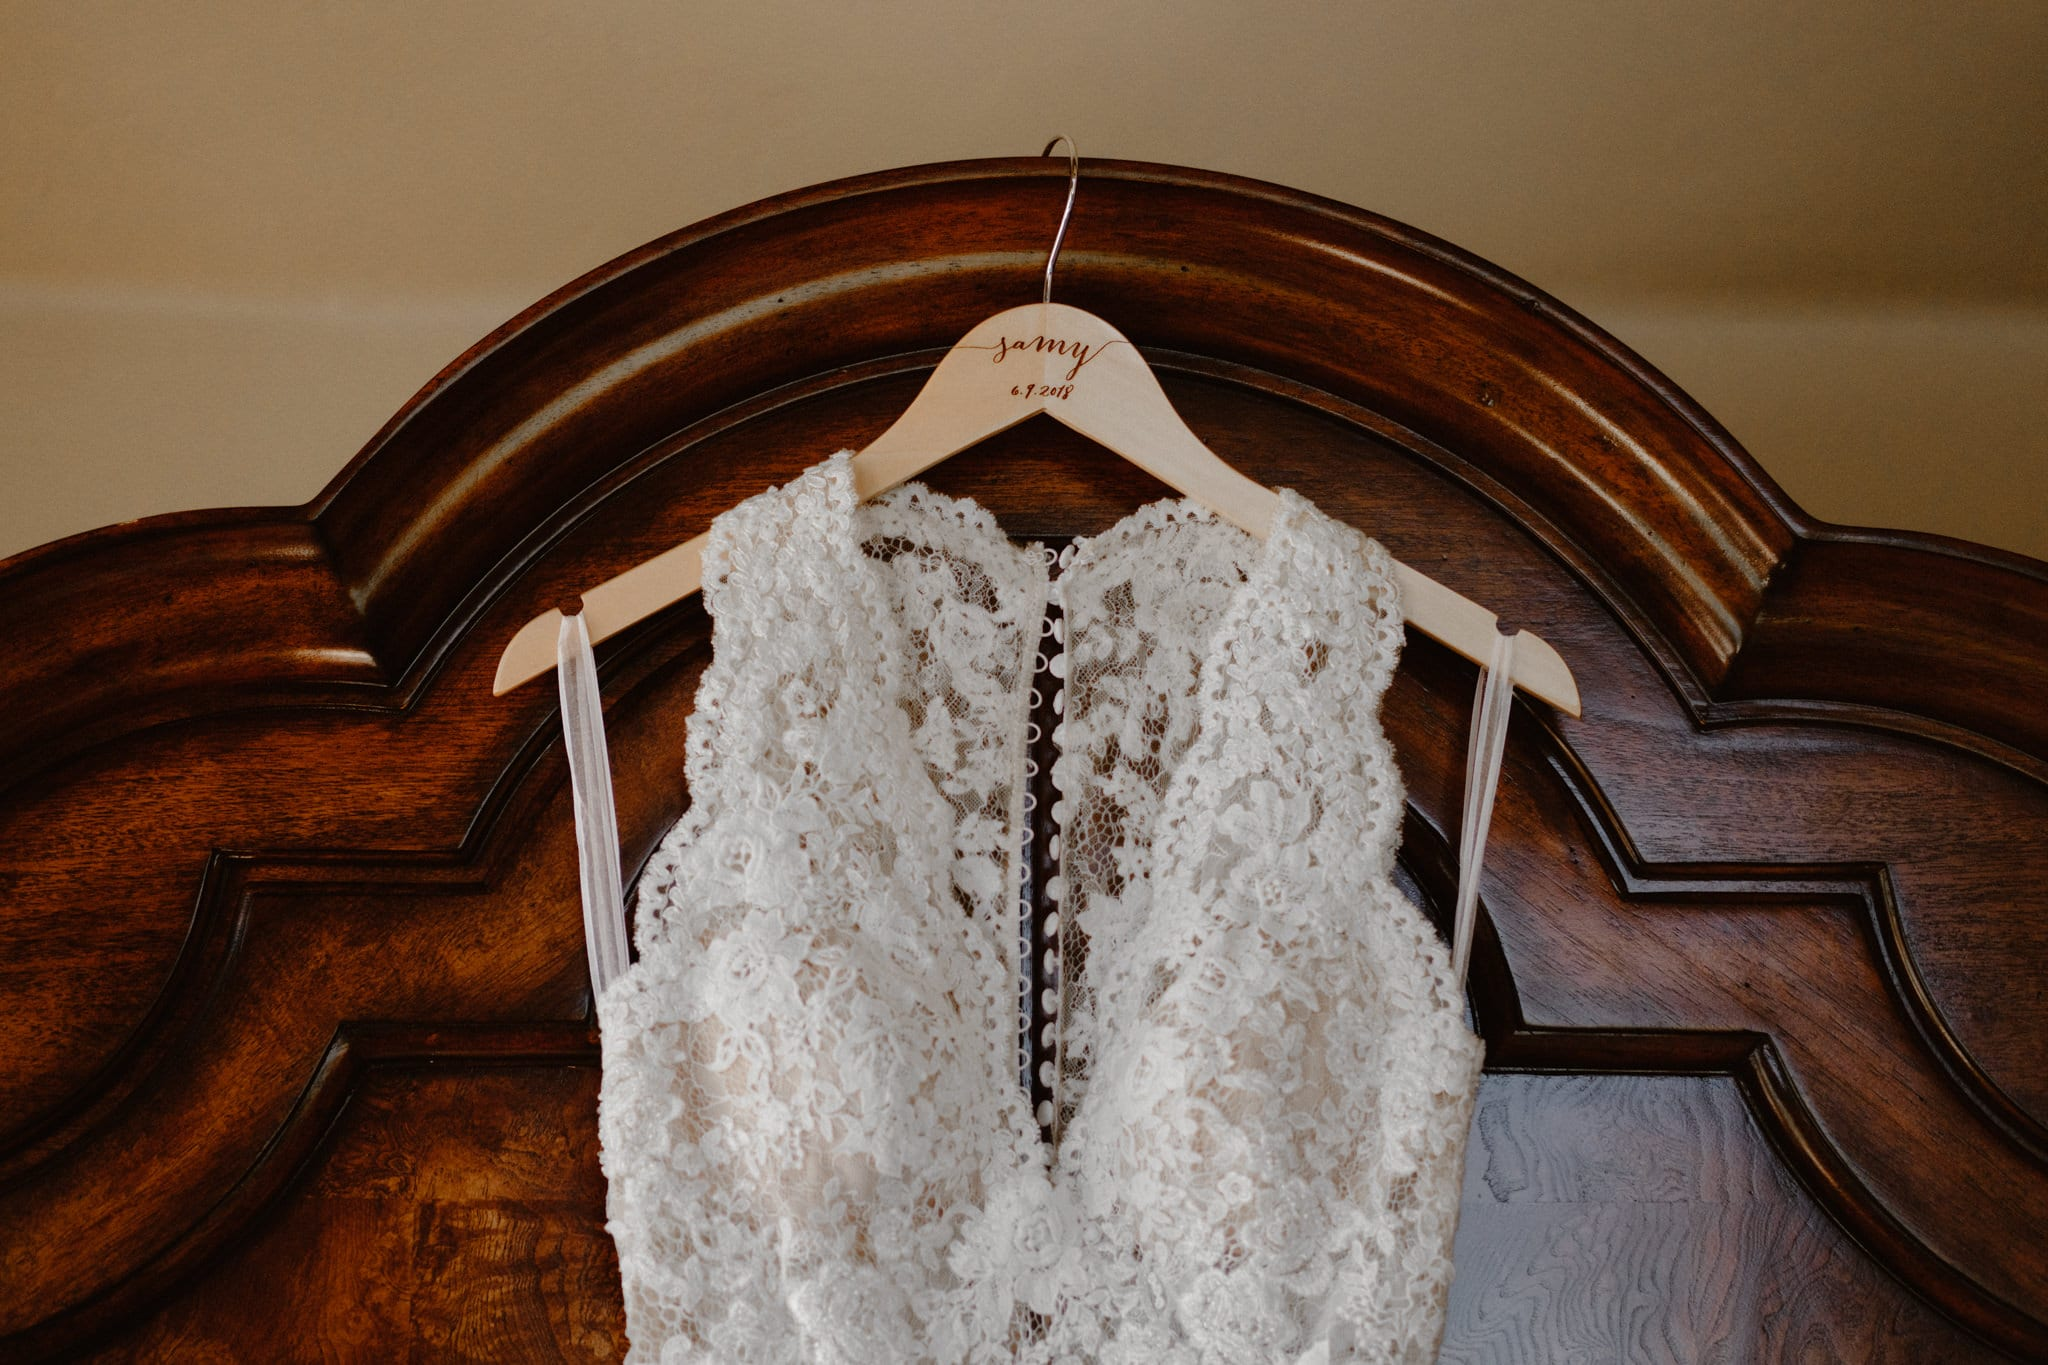 Lace body suit wedding dress on custom hanger with bride's name